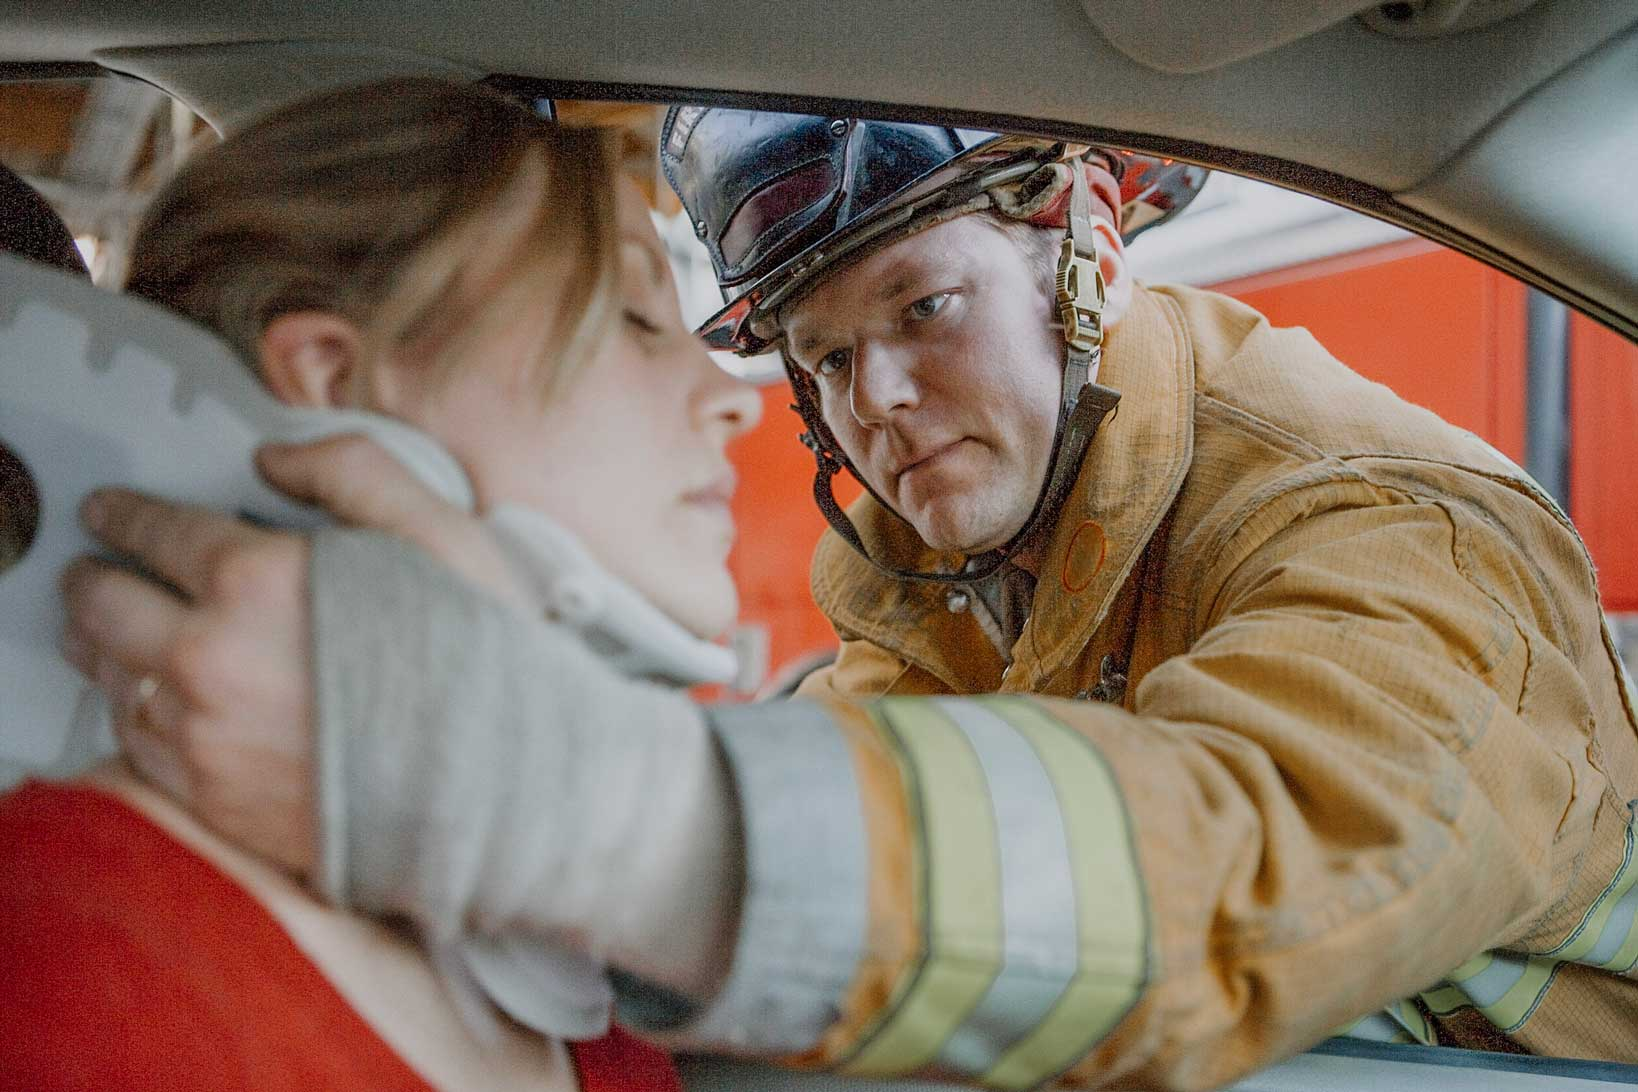 woman needing chiropractic adjustment after car accident in car with fire fighter help